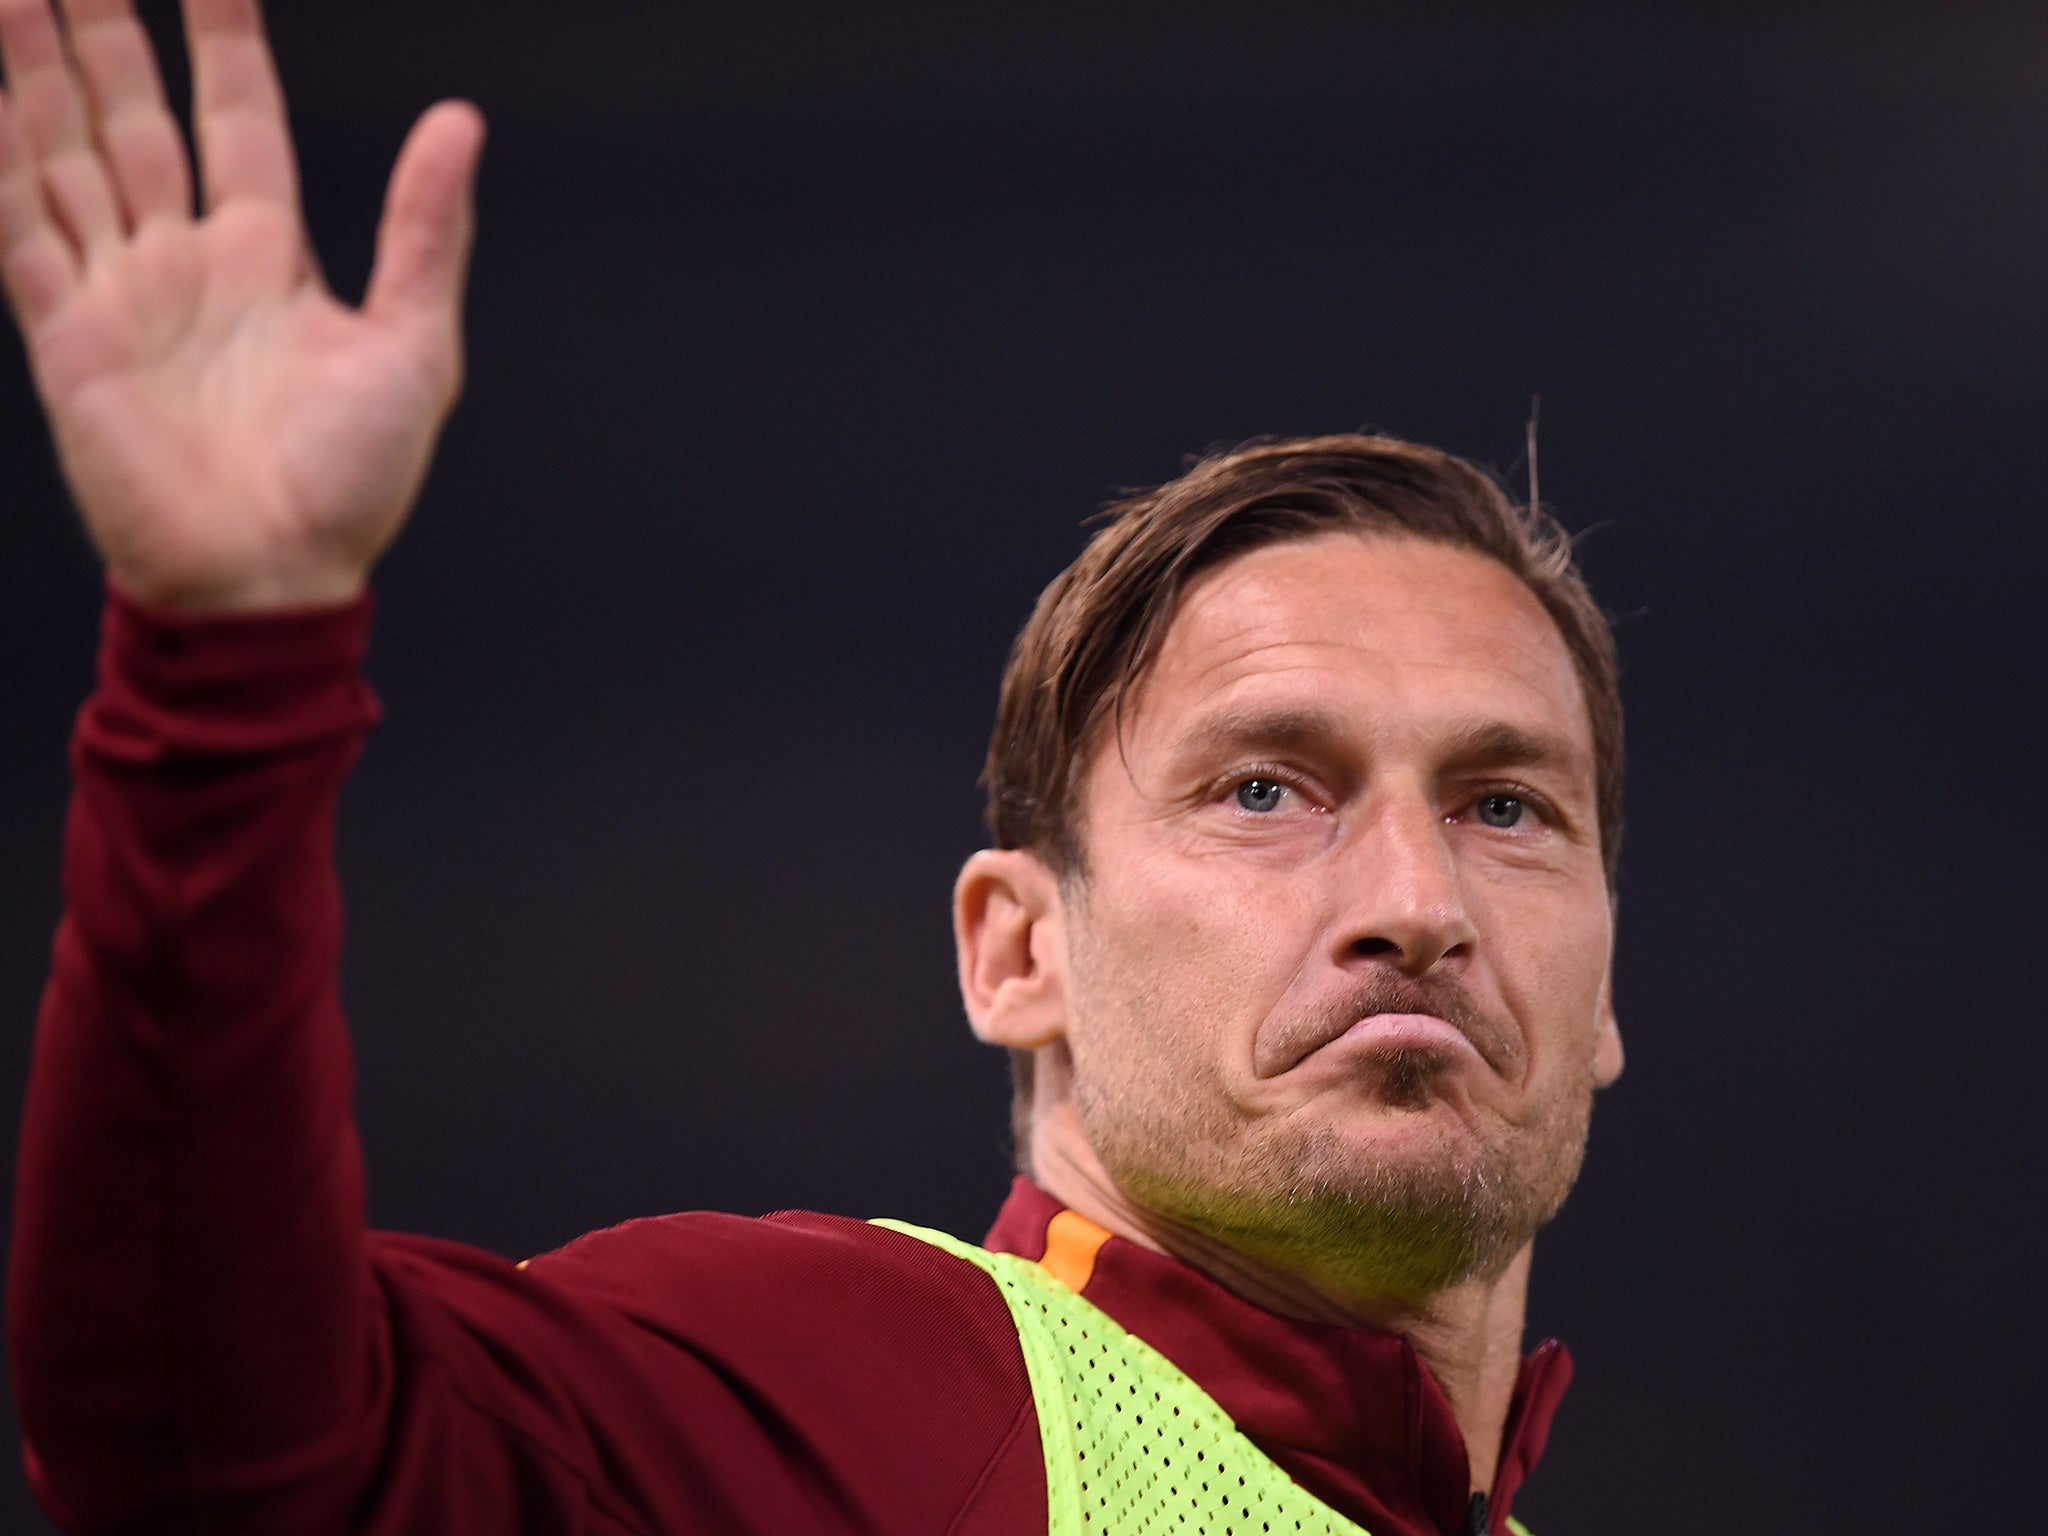 Francesco Totti announces retirement and will play last game for